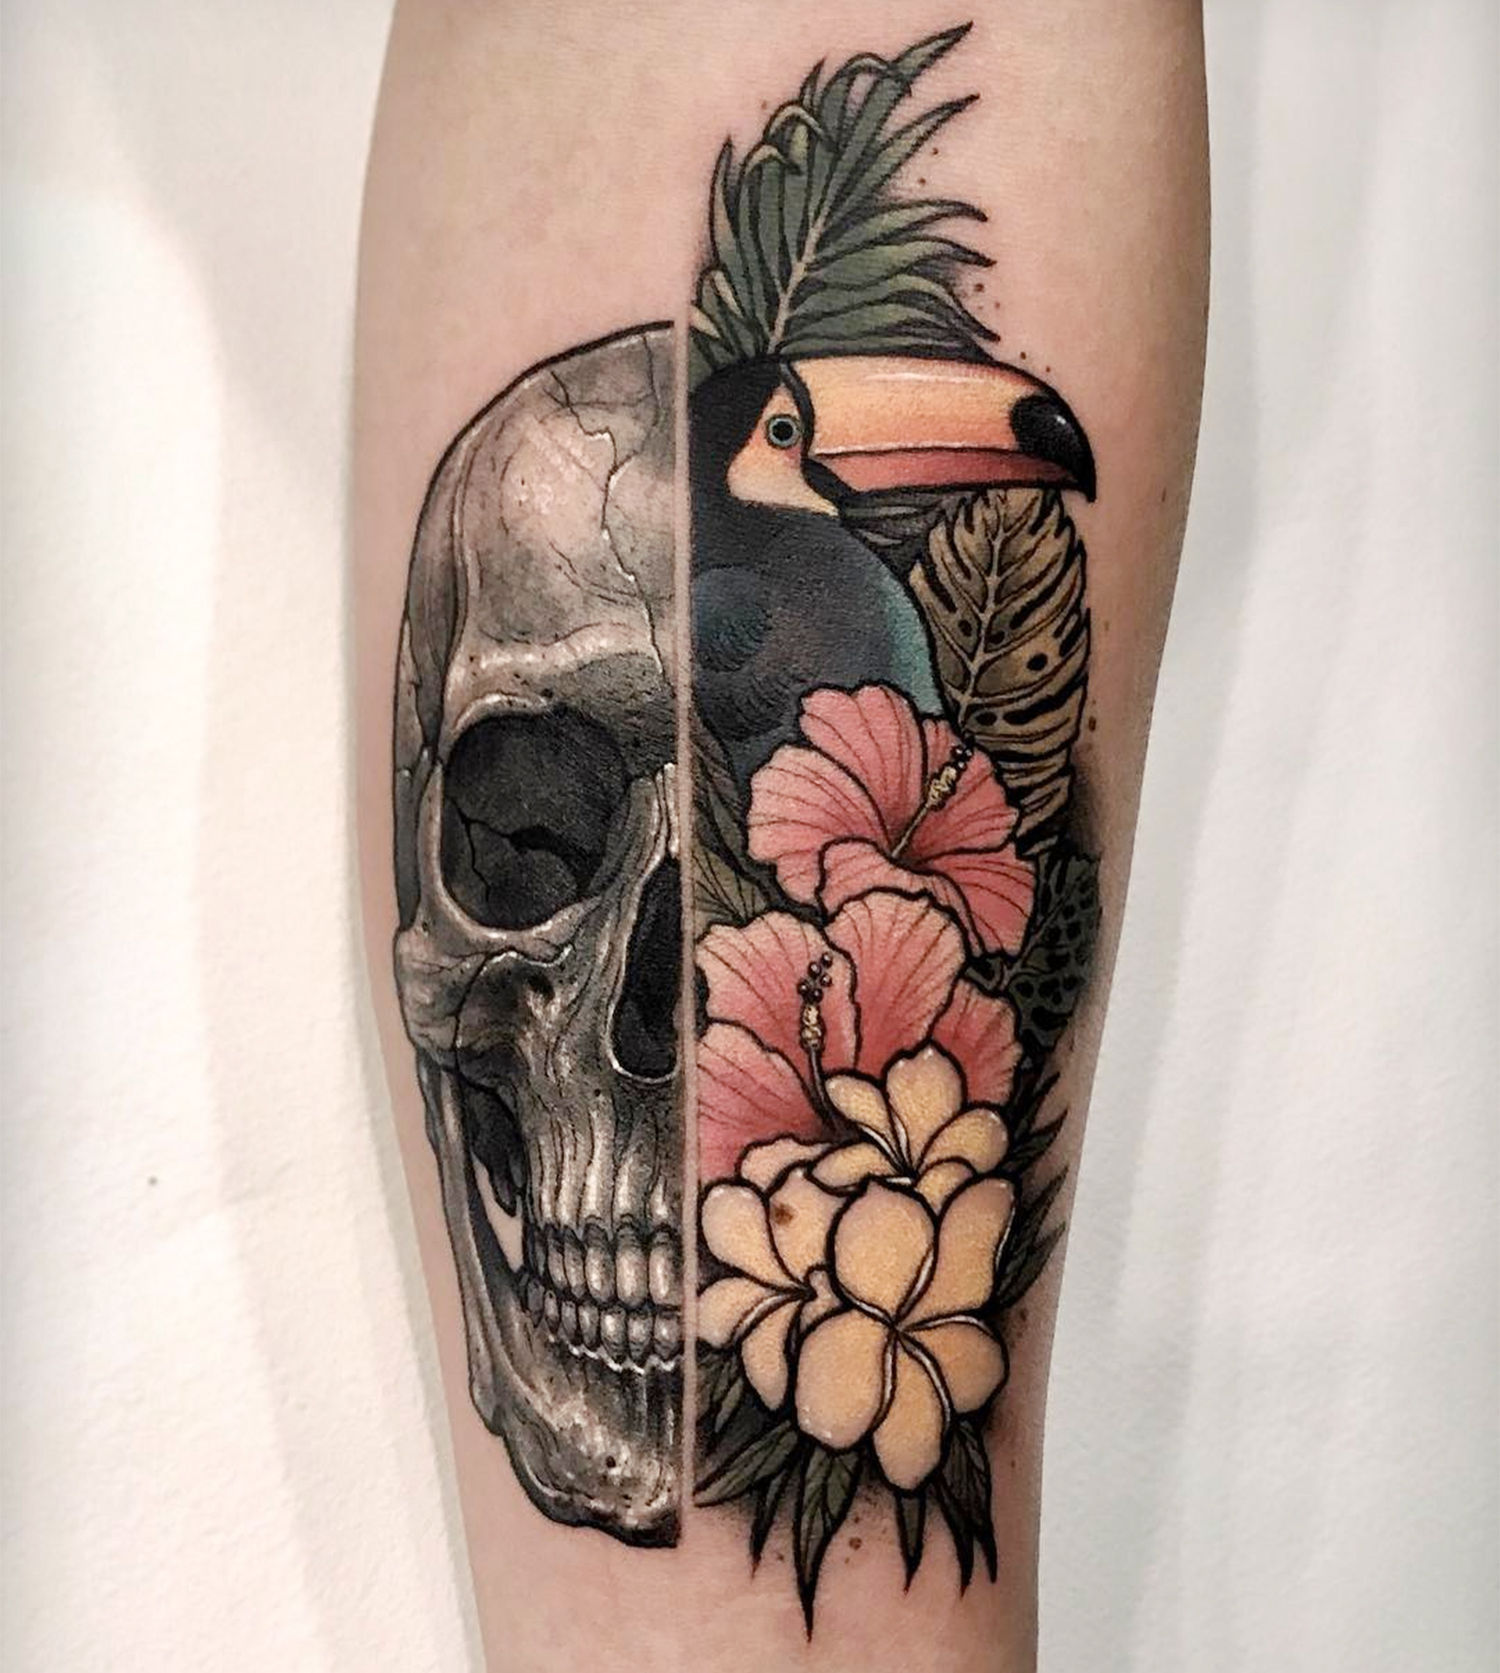 Skull/Tropical tattoo by Varo Tattooer